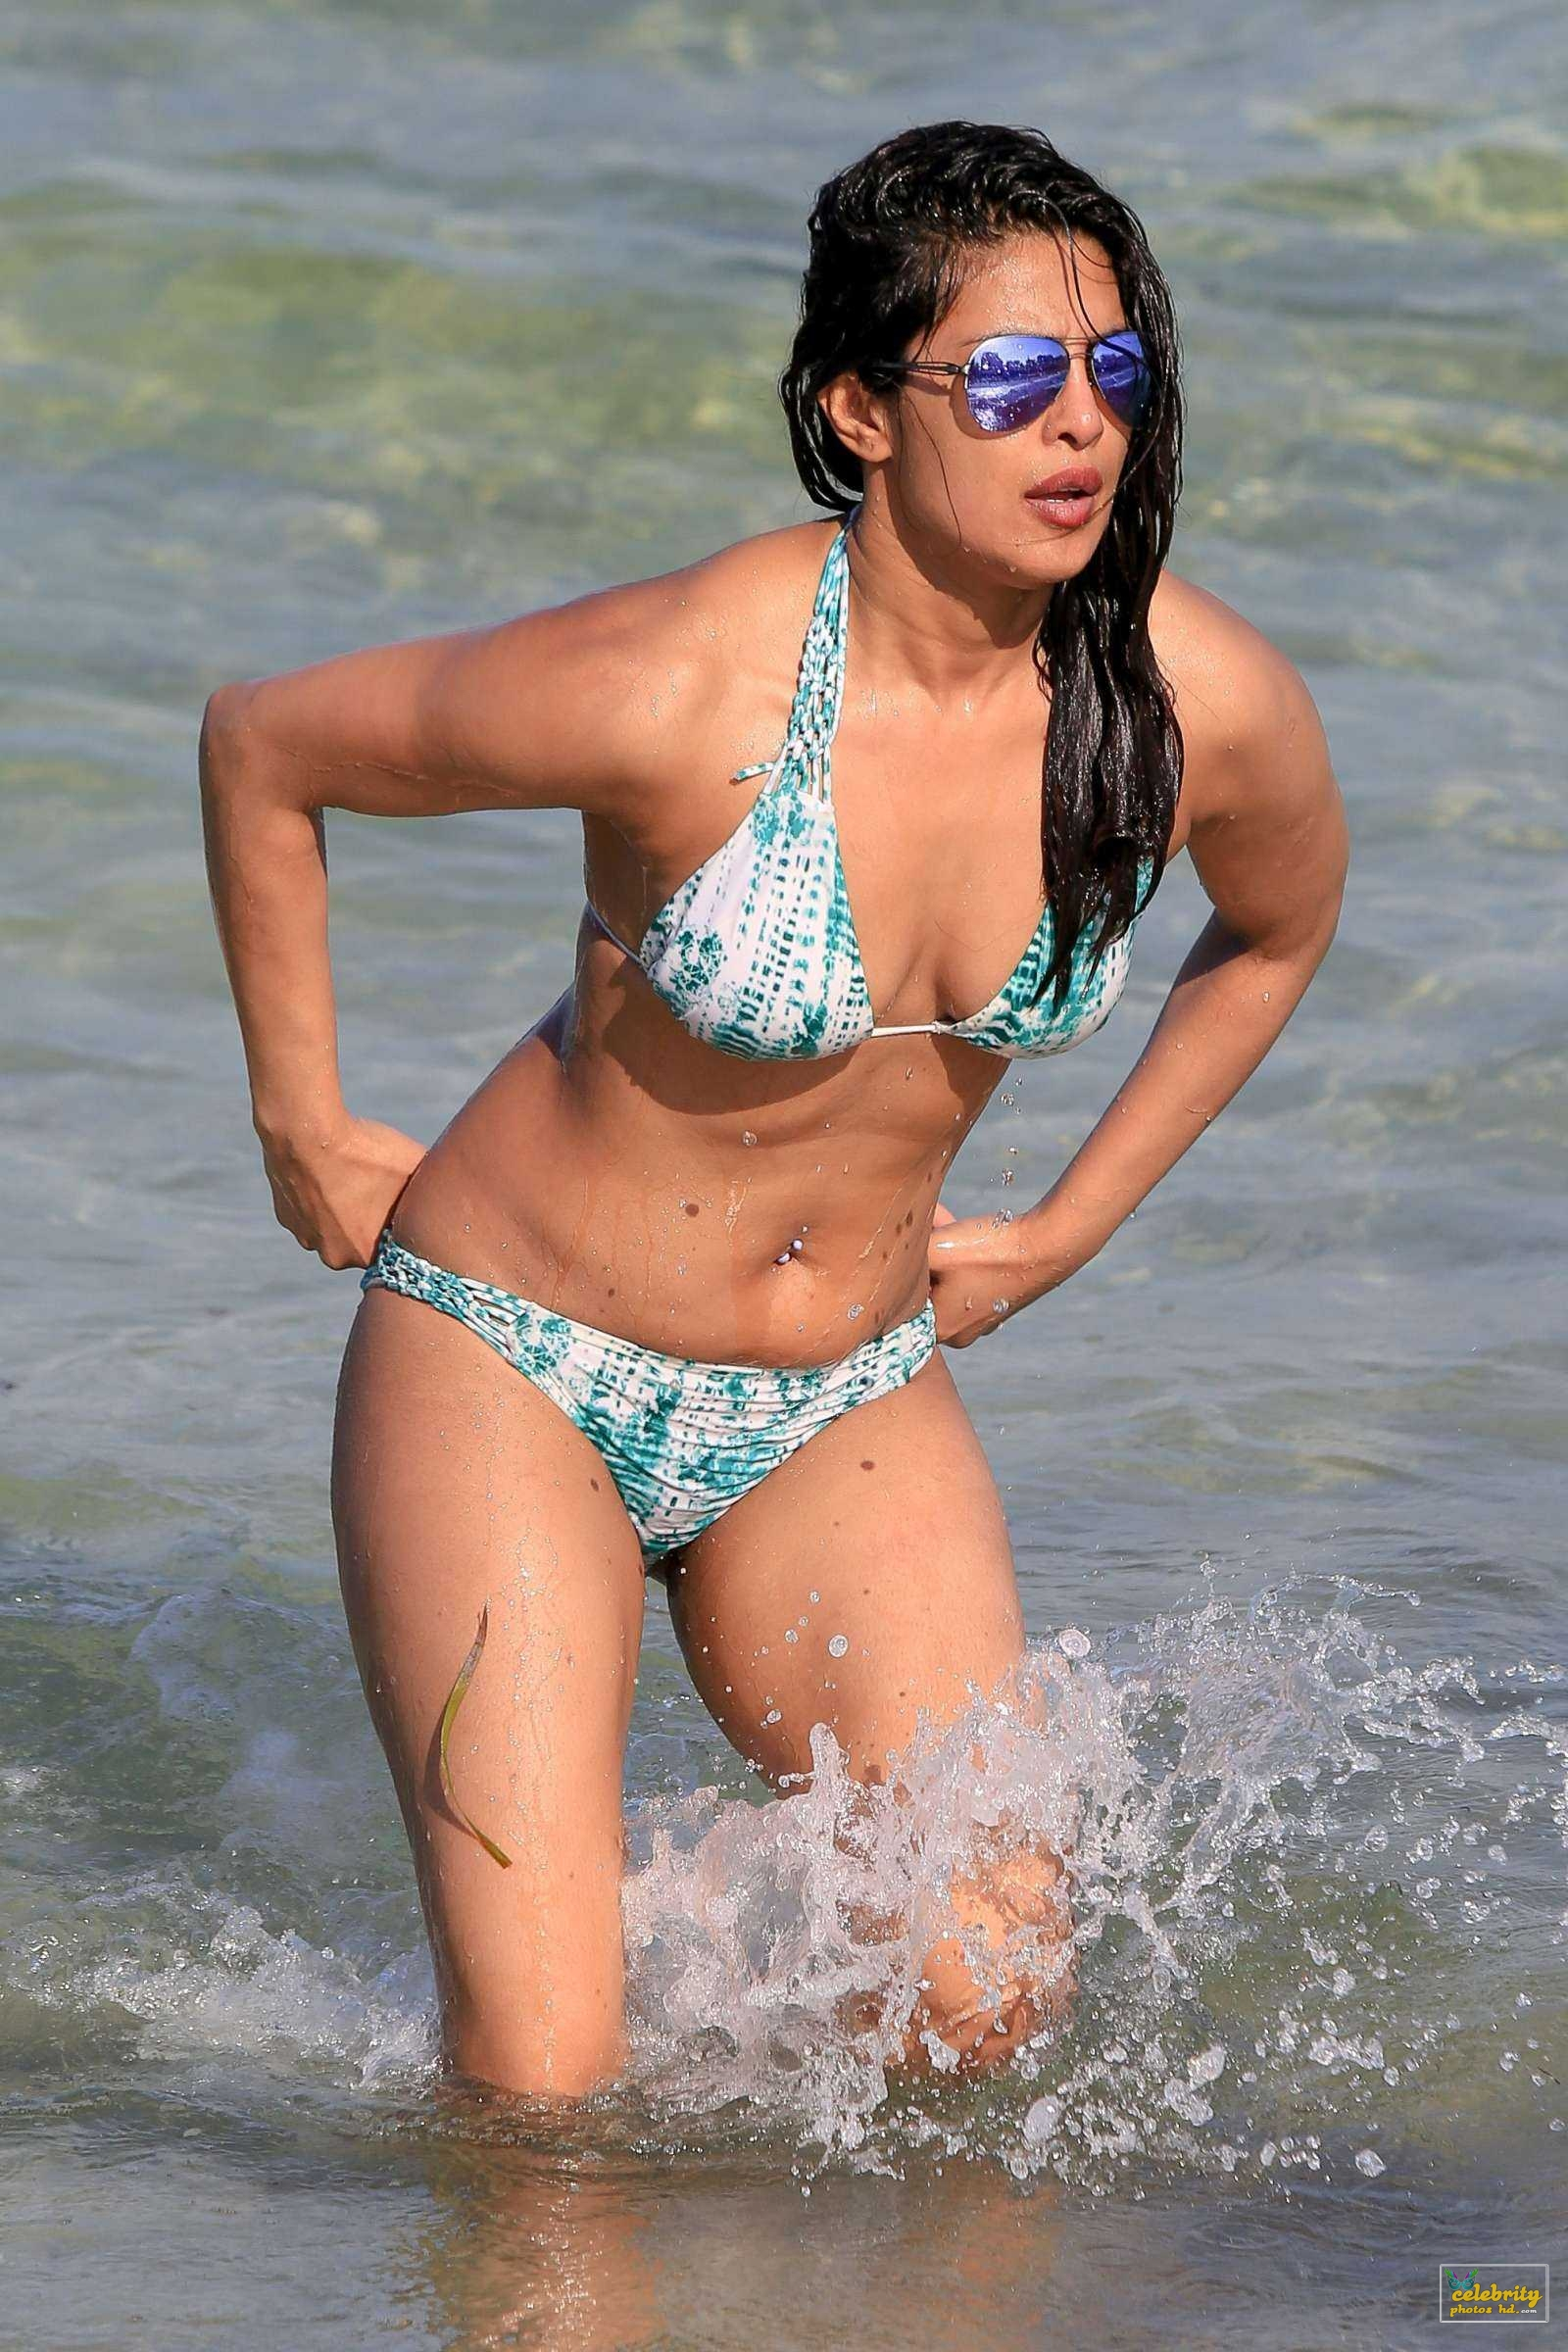 Priyanka Chopra in Bikini, Swimming in the Ocean at Beach in Miami